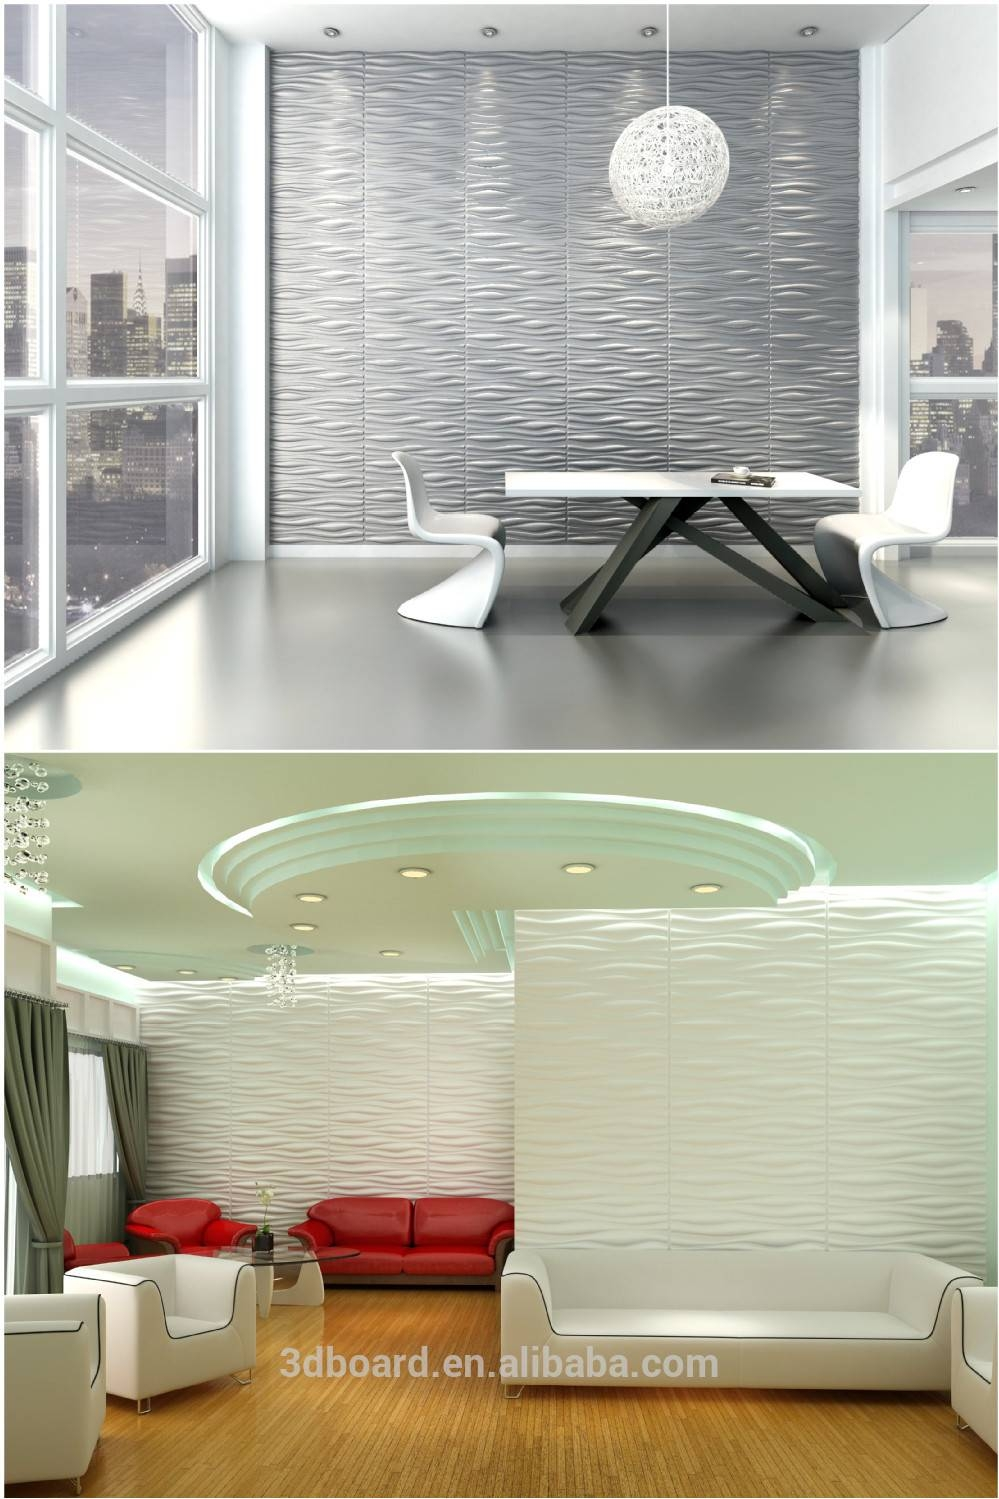 Modern Wall Art Decor Interior 3d Effect Wall Panels For Home Throughout Latest 3d Wall Art And Interiors (View 6 of 20)